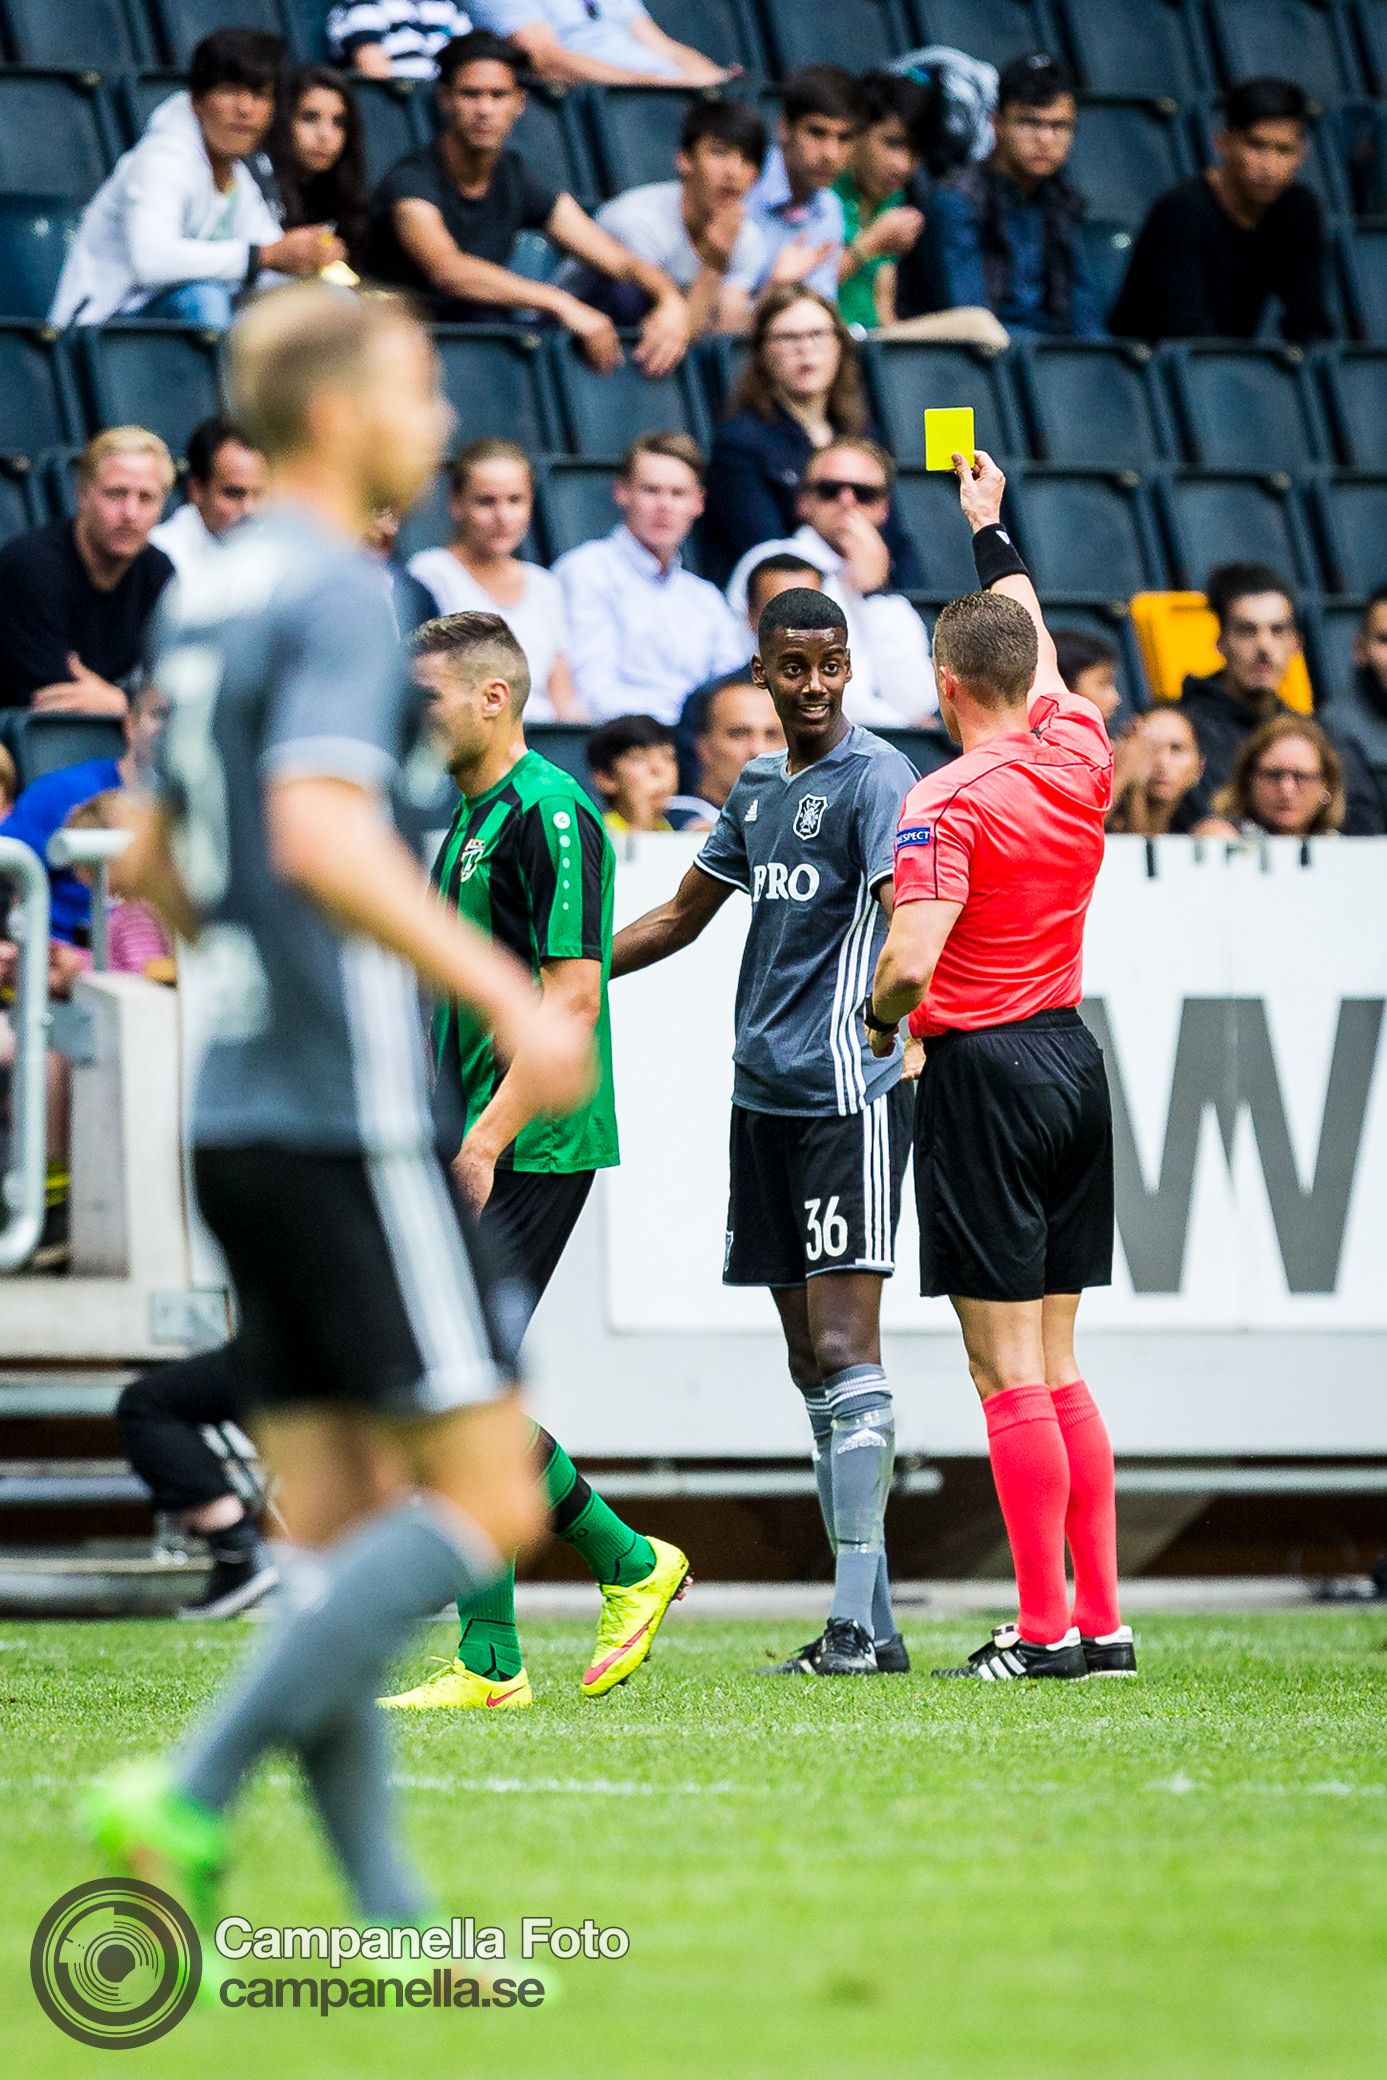 AIK scrapes past Europa FC - Michael Campanella Photography